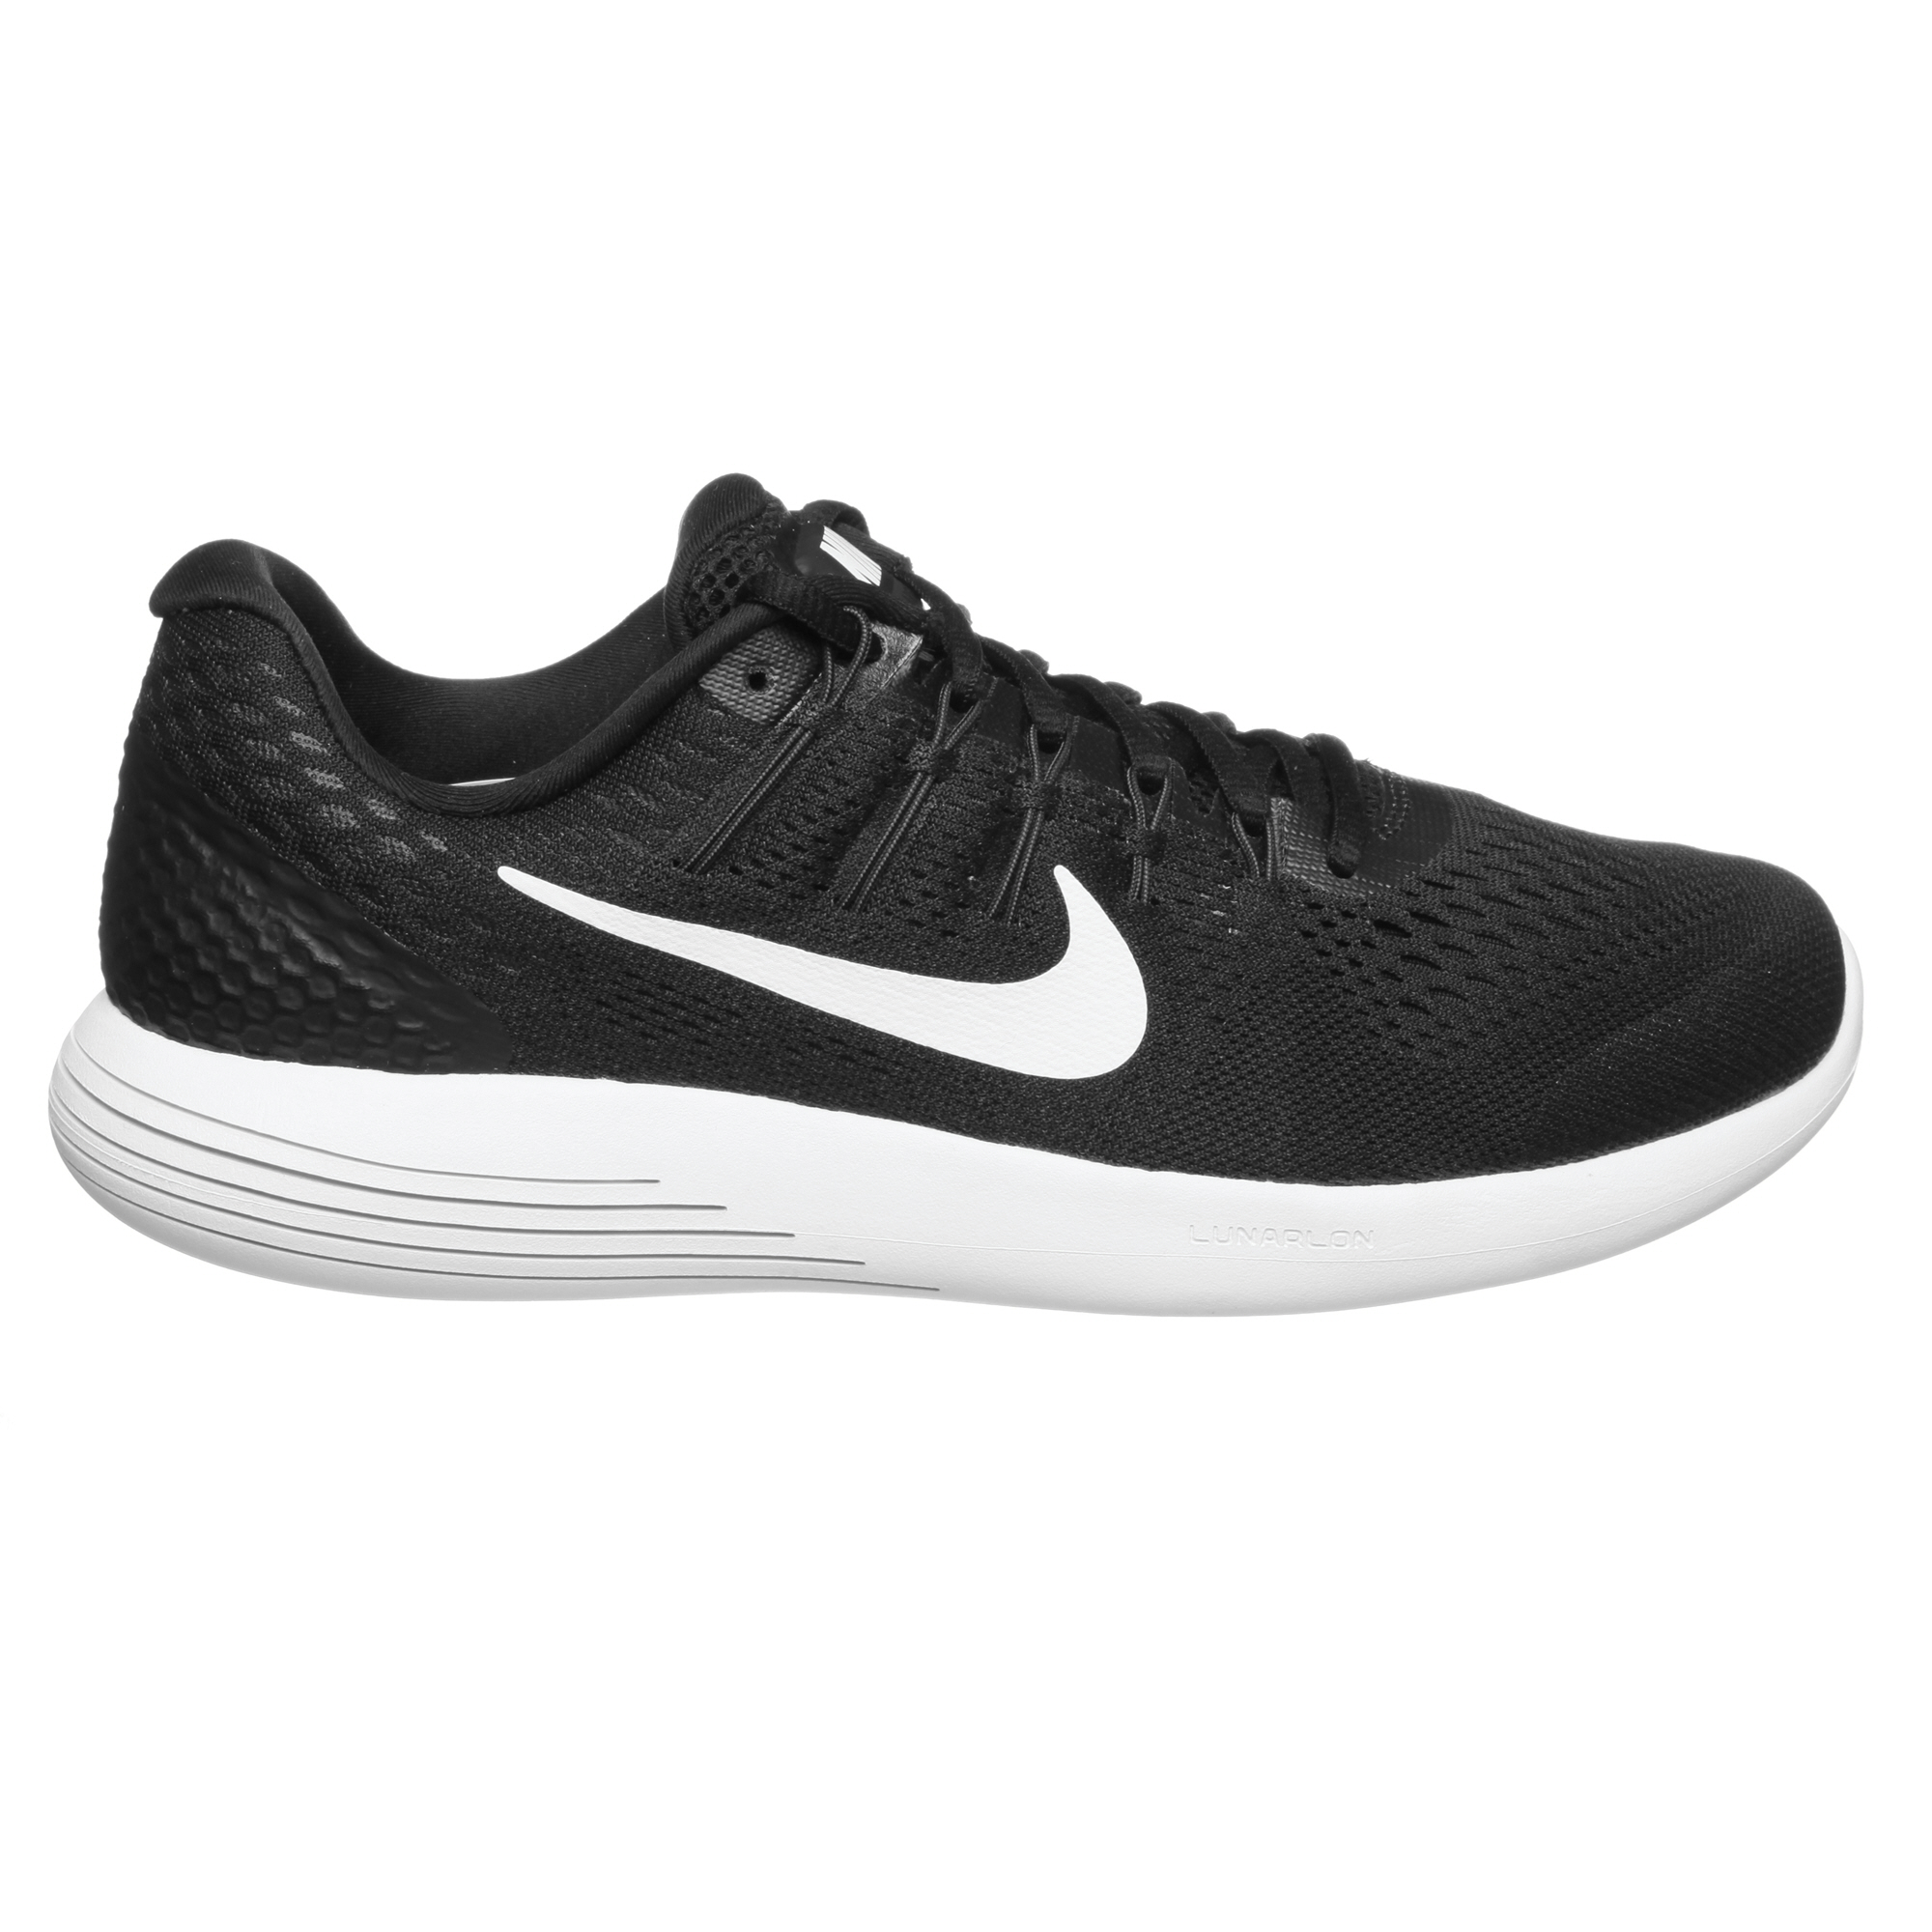 b4e52d2bbc3 Wiggle | Nike Lunarglide 8 Shoes | Running Shoes